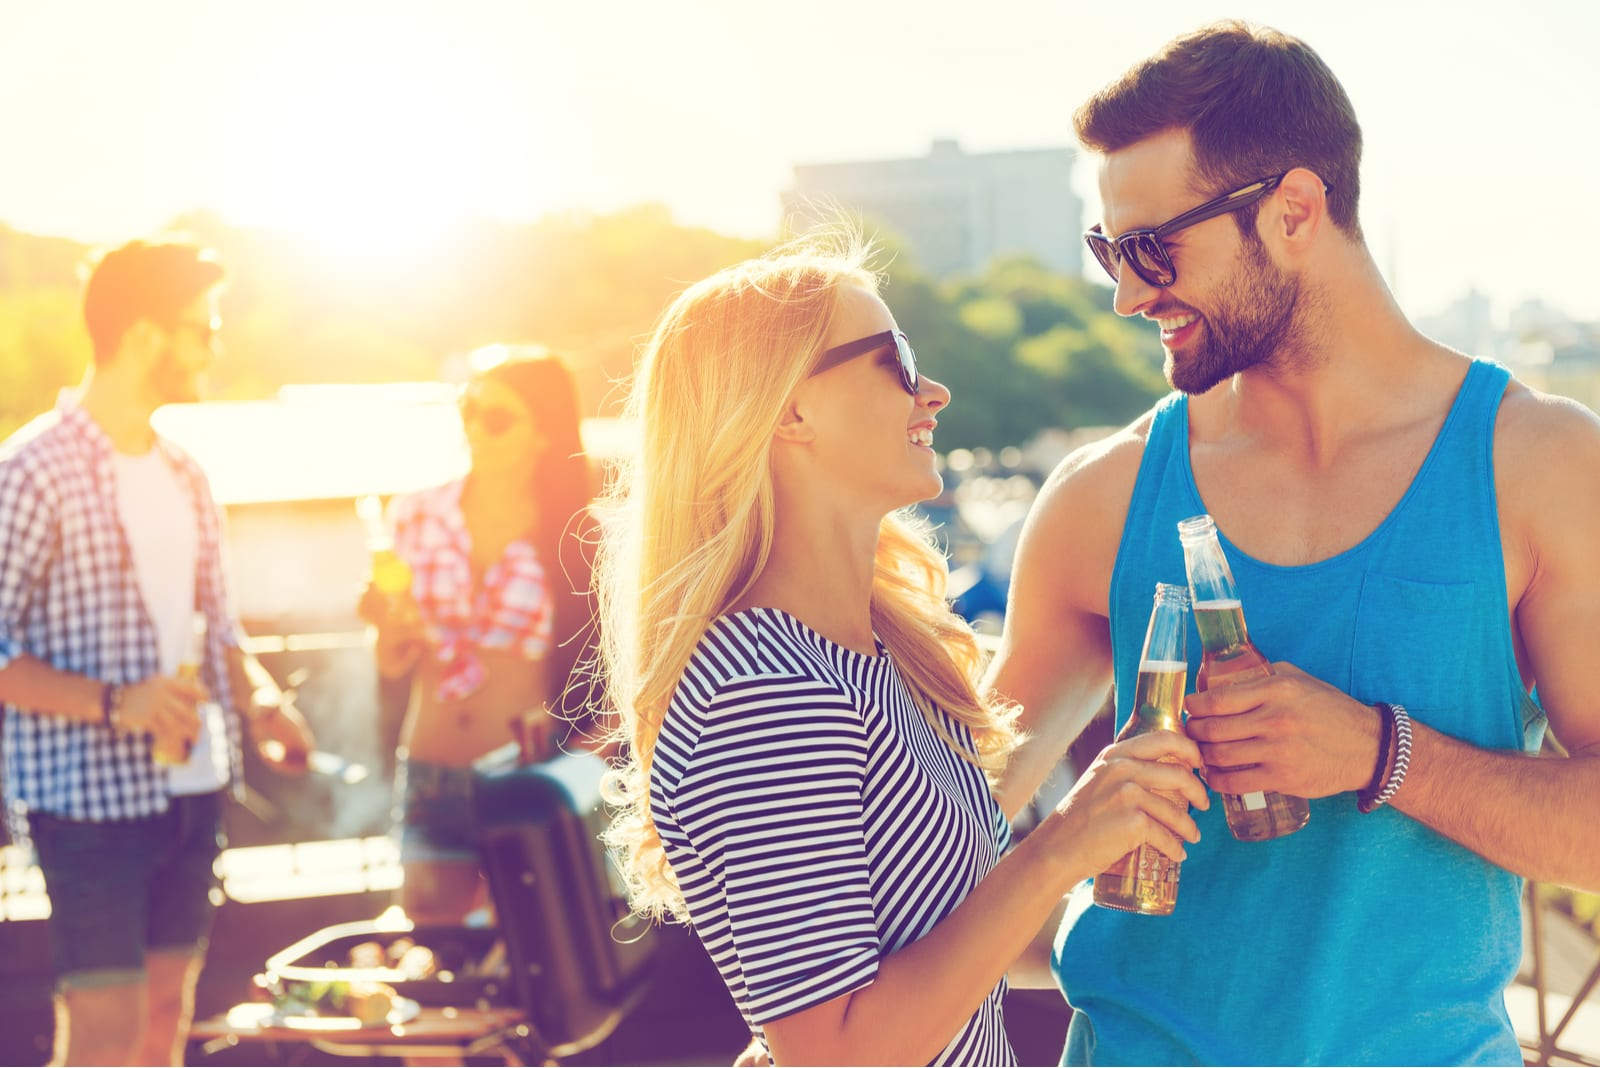 Smiling young couple clinking glasses